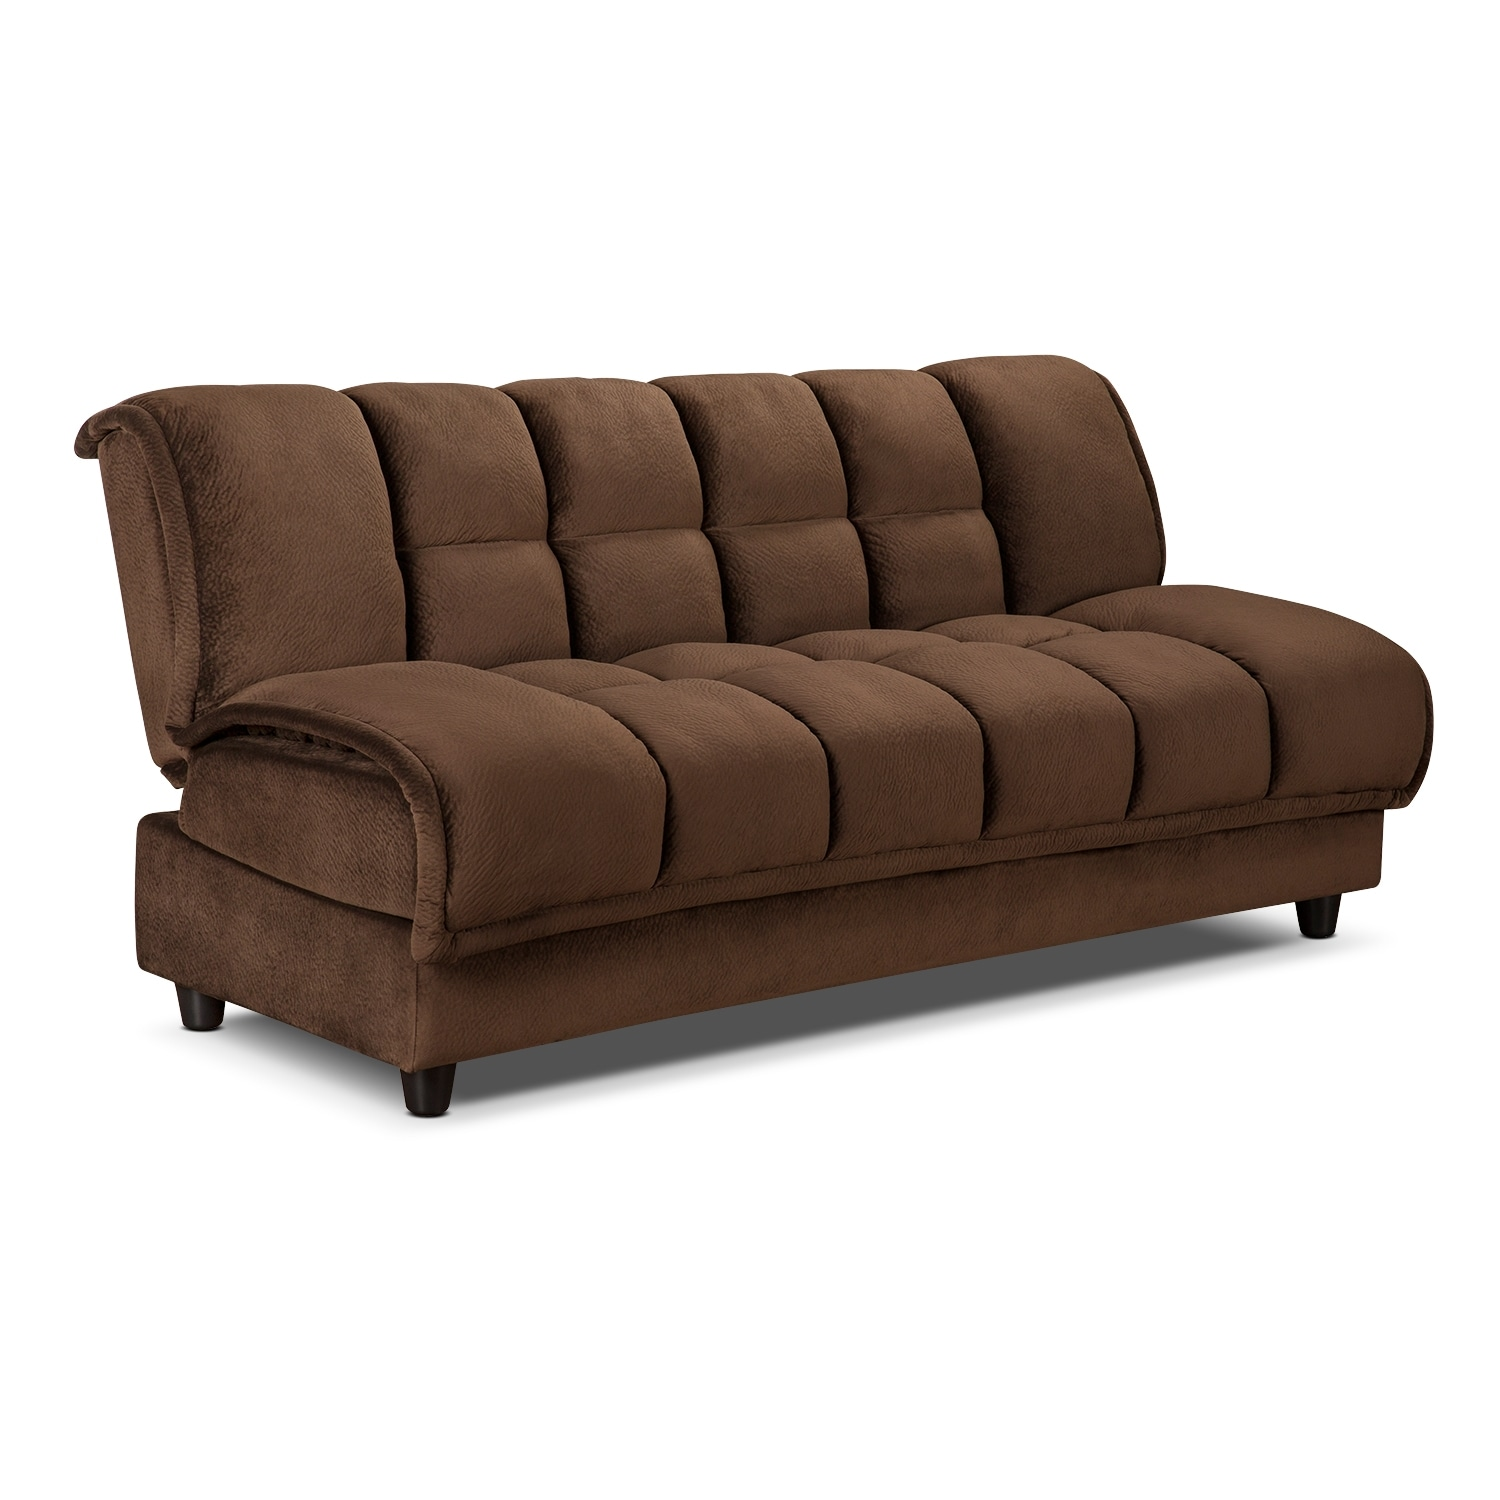 Darrow futon sofa bed with storage for Chair with storage